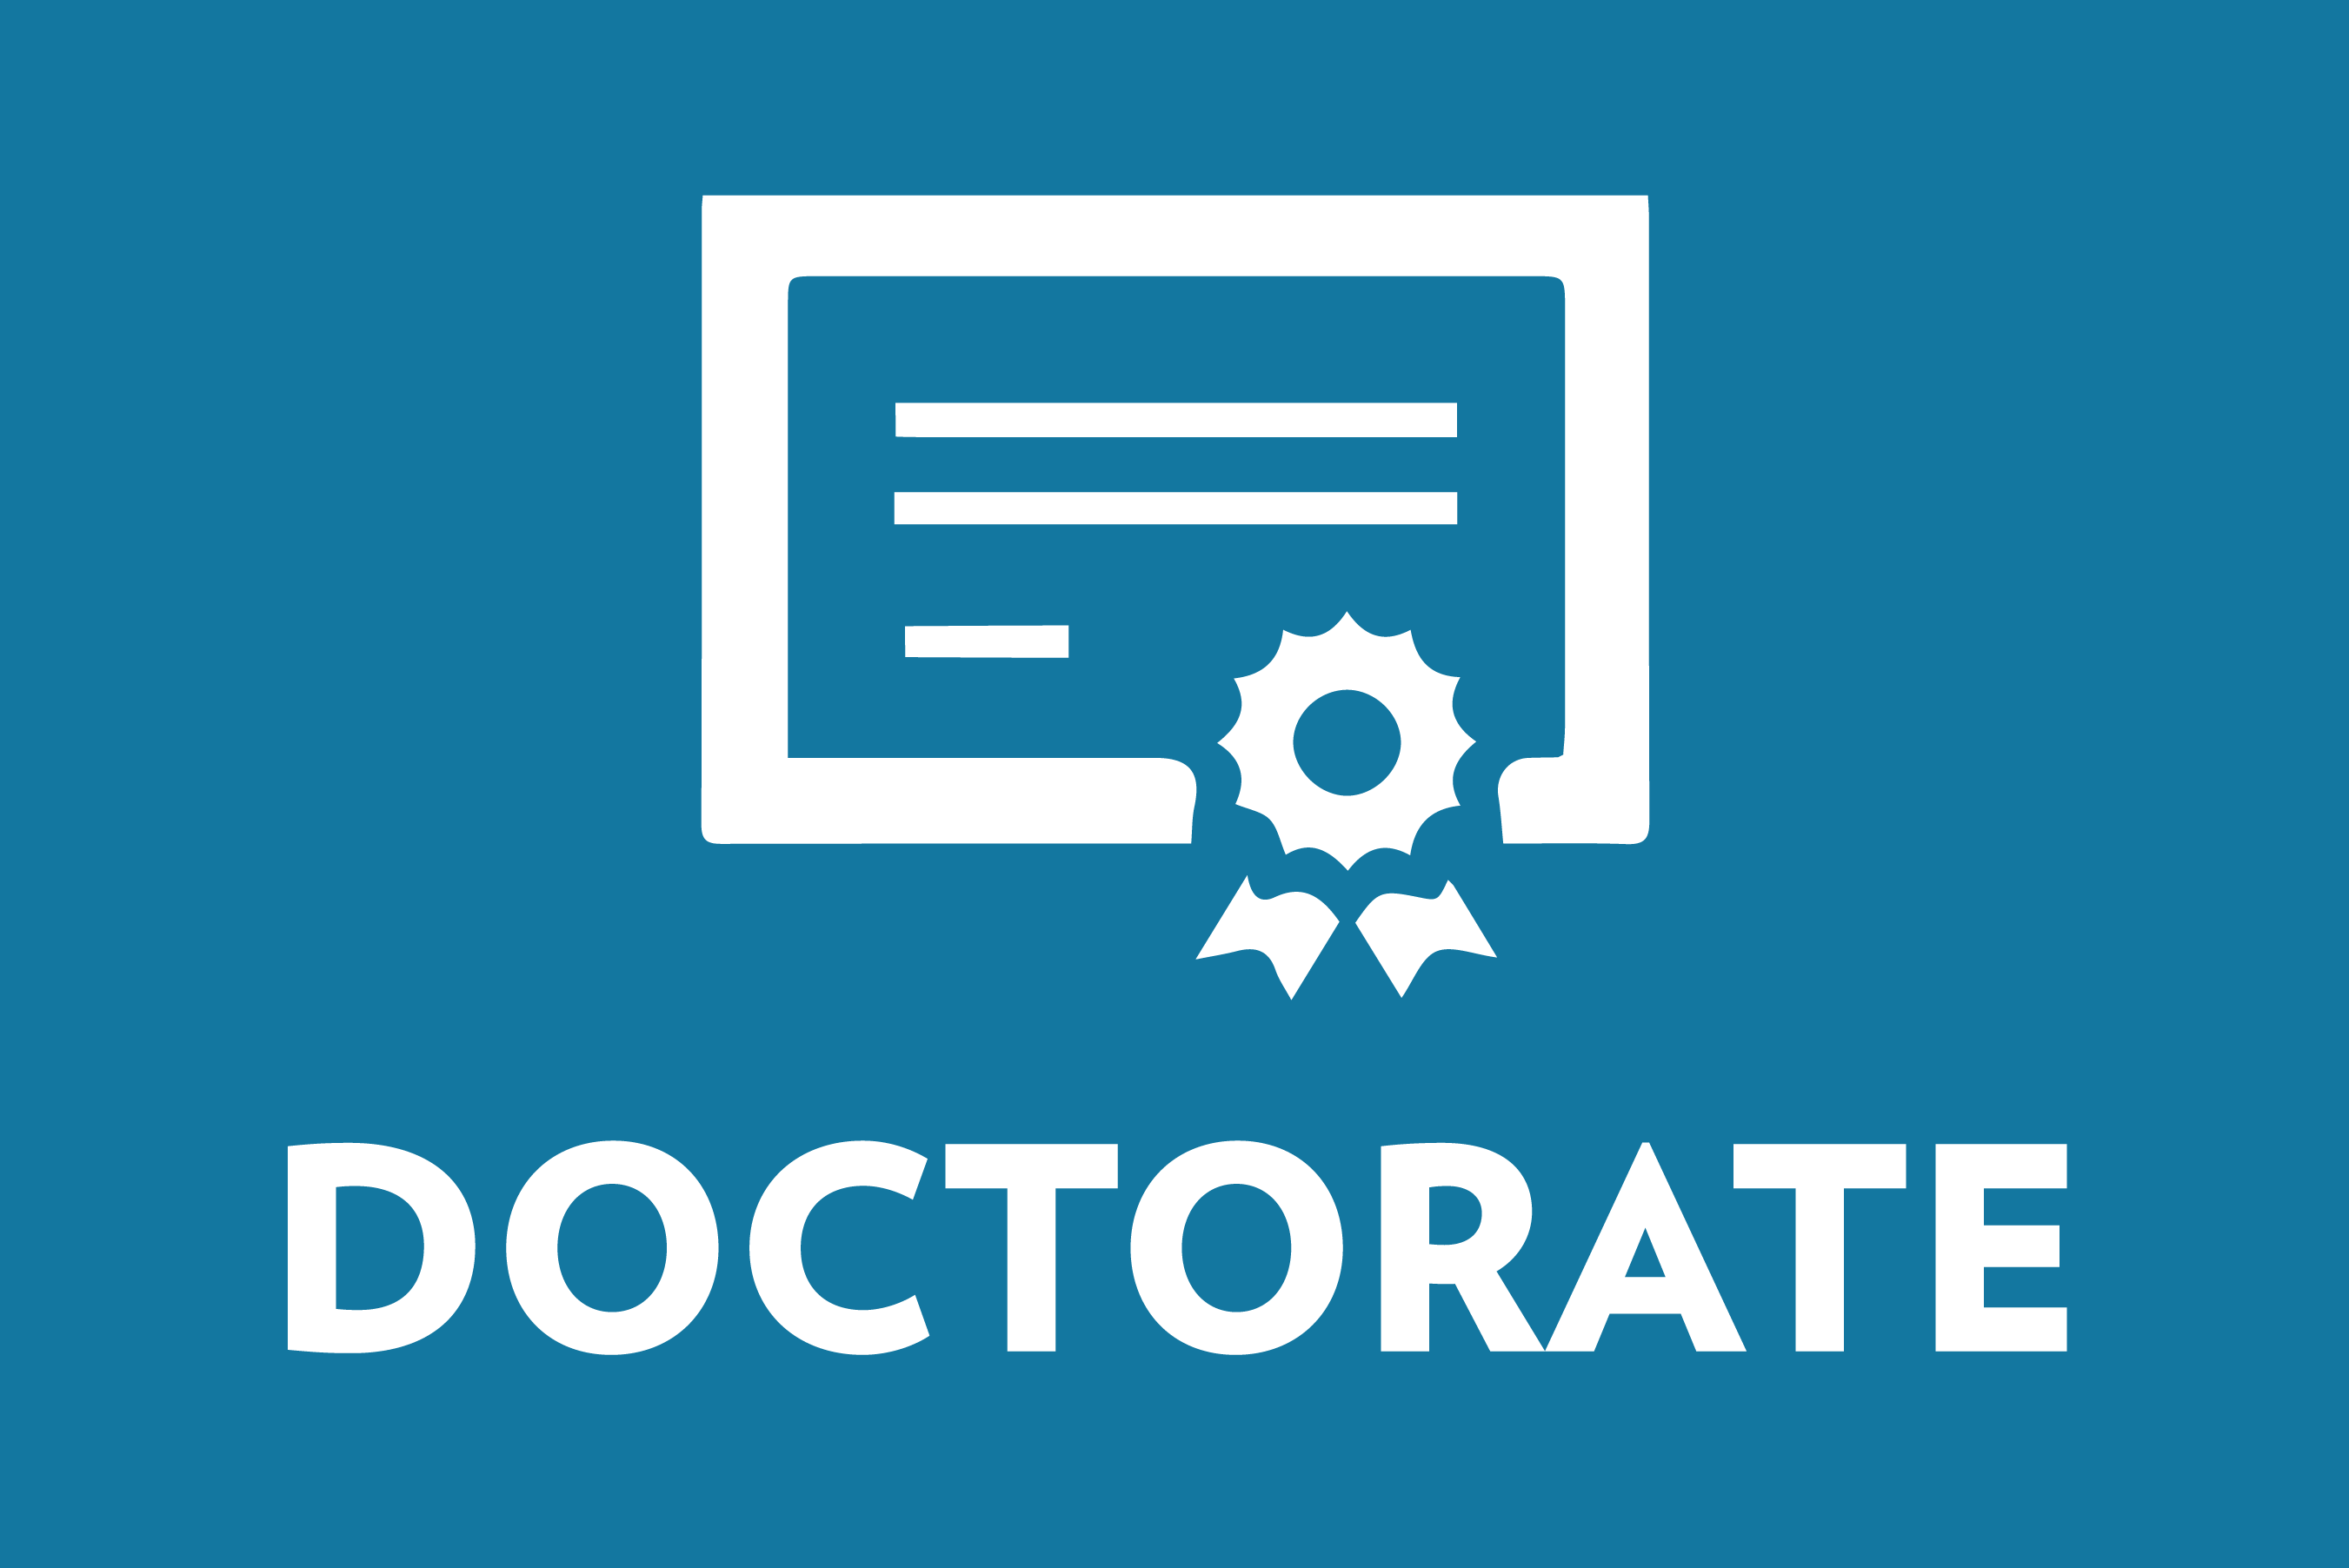 doctorate icon